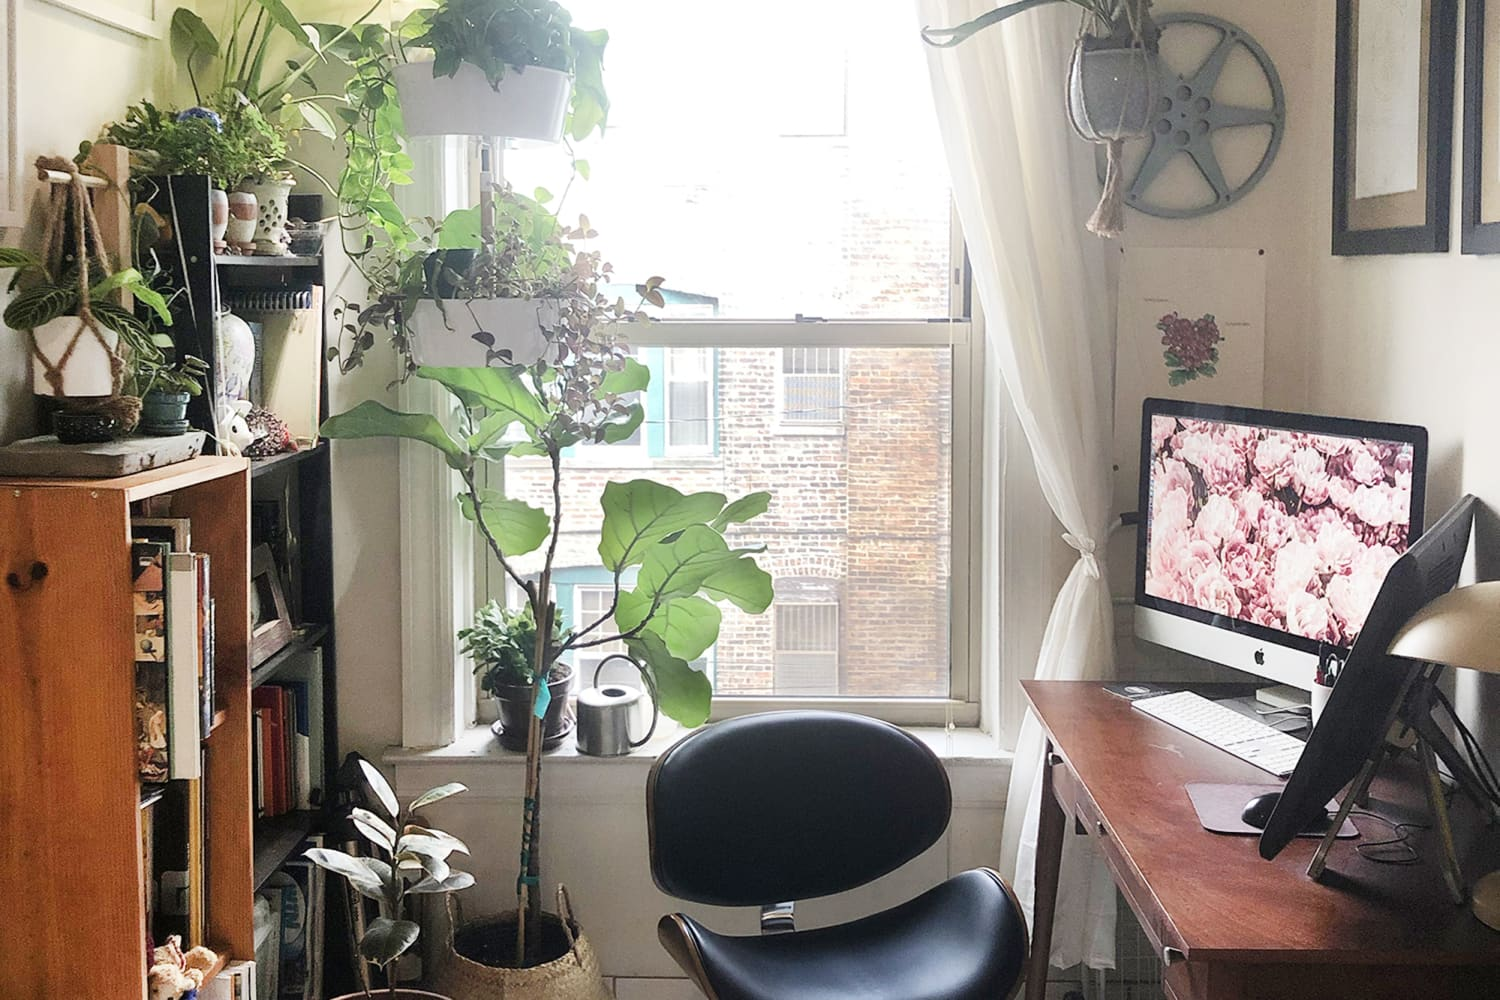 Elbow Grease Made This Small 400-Square-Foot Studio Extremely Livable